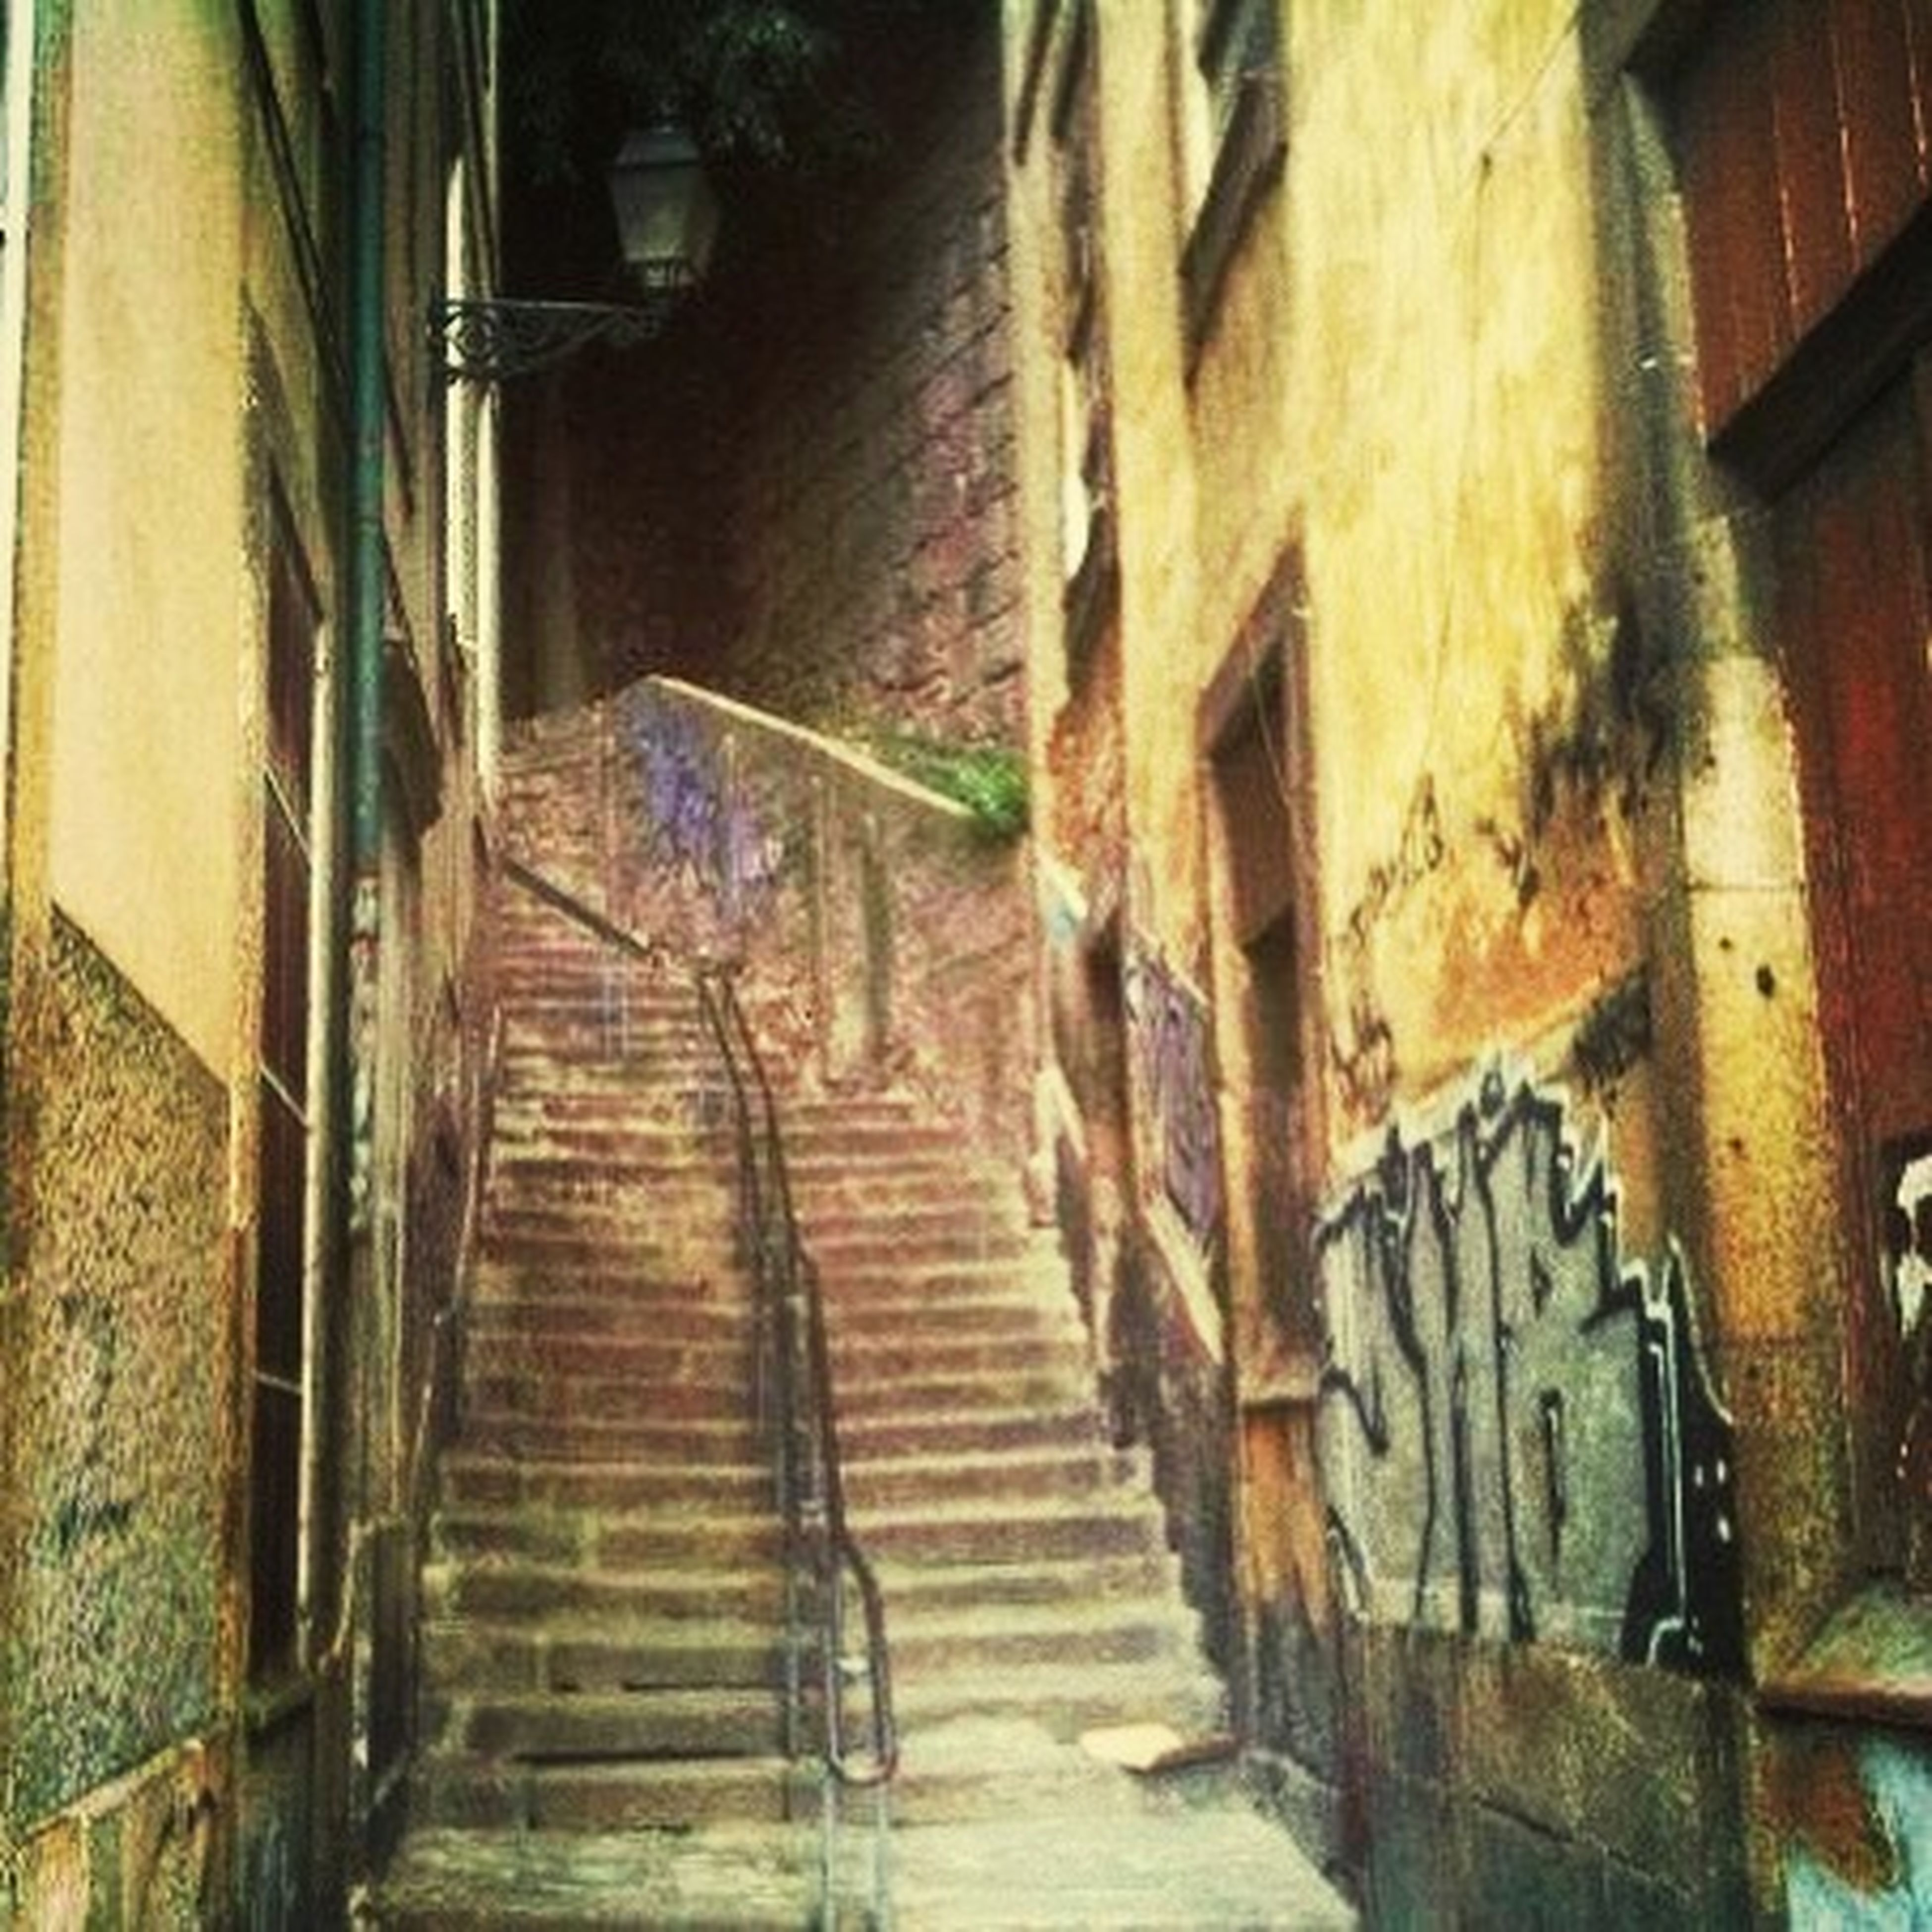 architecture, built structure, building exterior, the way forward, building, wall - building feature, residential structure, house, residential building, narrow, old, alley, brick wall, graffiti, steps, wall, abandoned, weathered, diminishing perspective, door